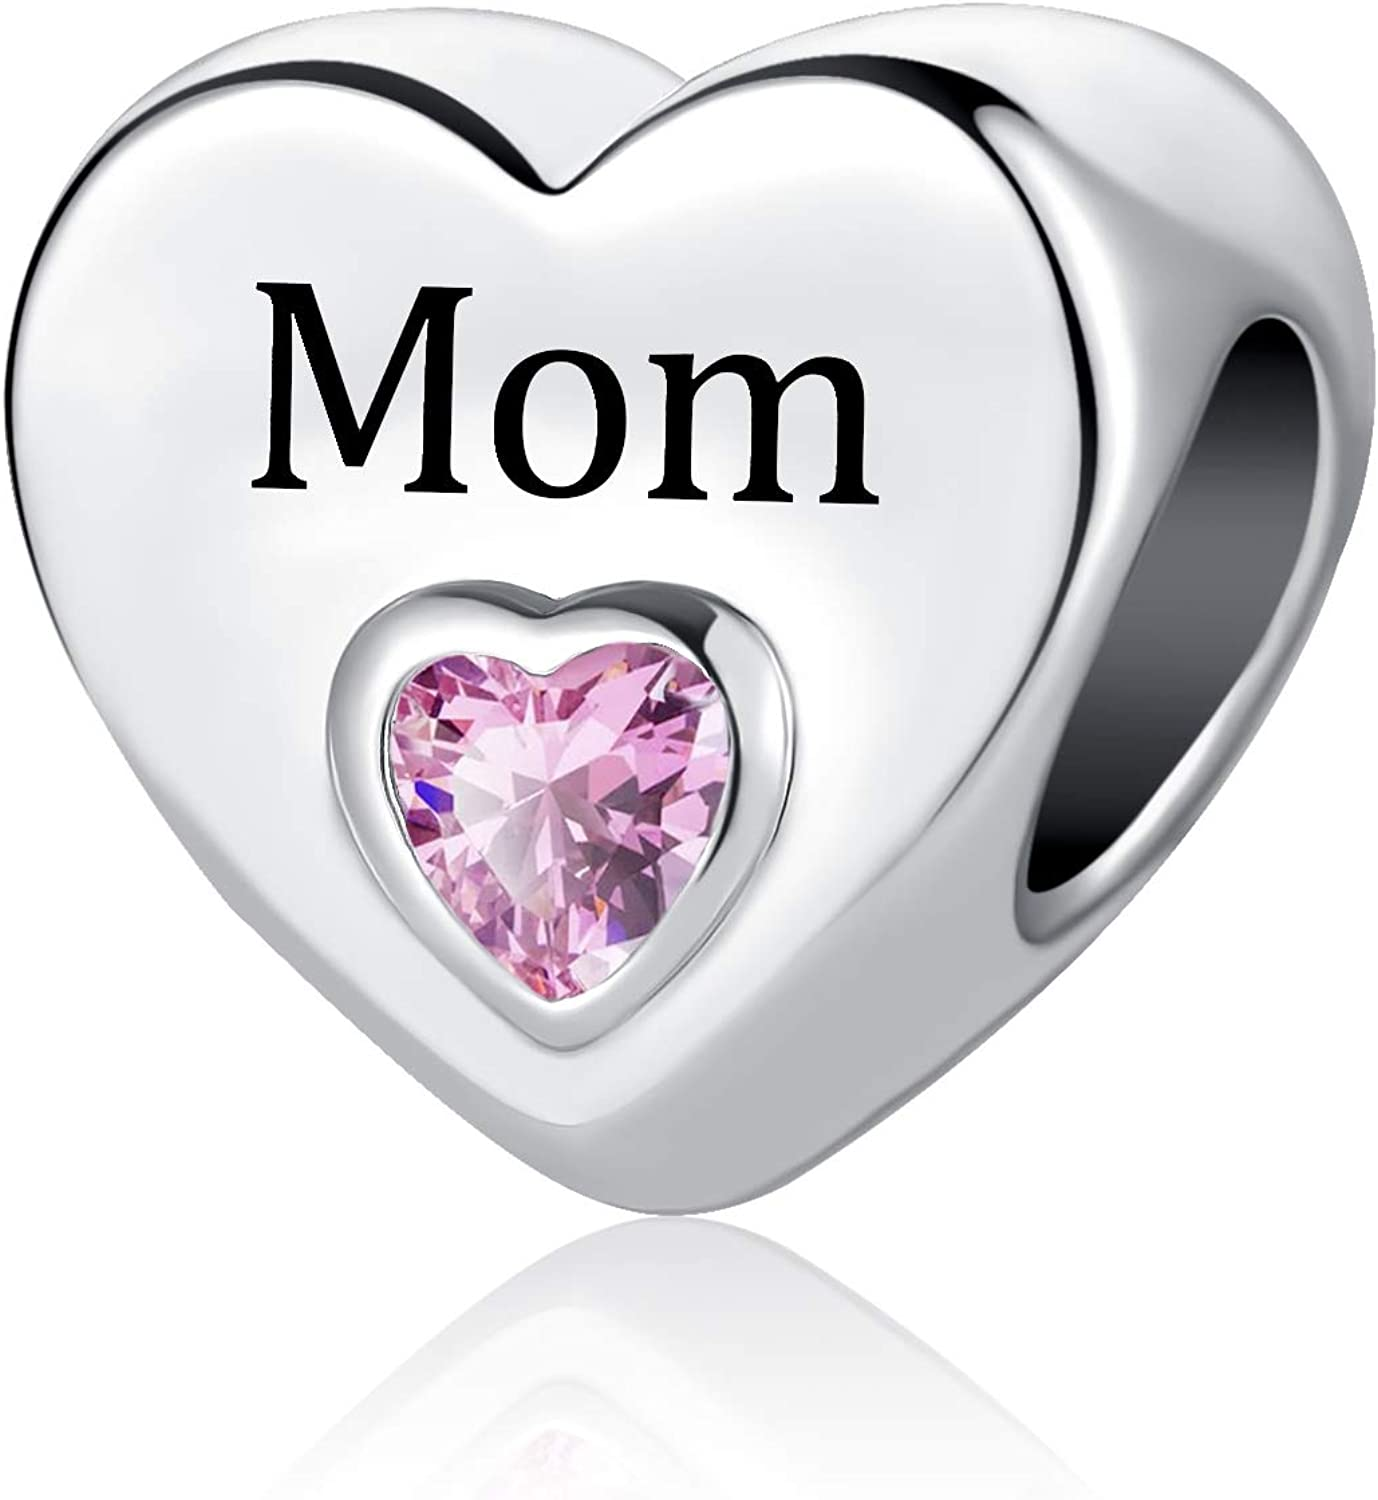 QeenseKc Mom Daughter Sister Wife Charm Family Forever Heart Love Cubic Zirconia Bead for Pandora Bracelet